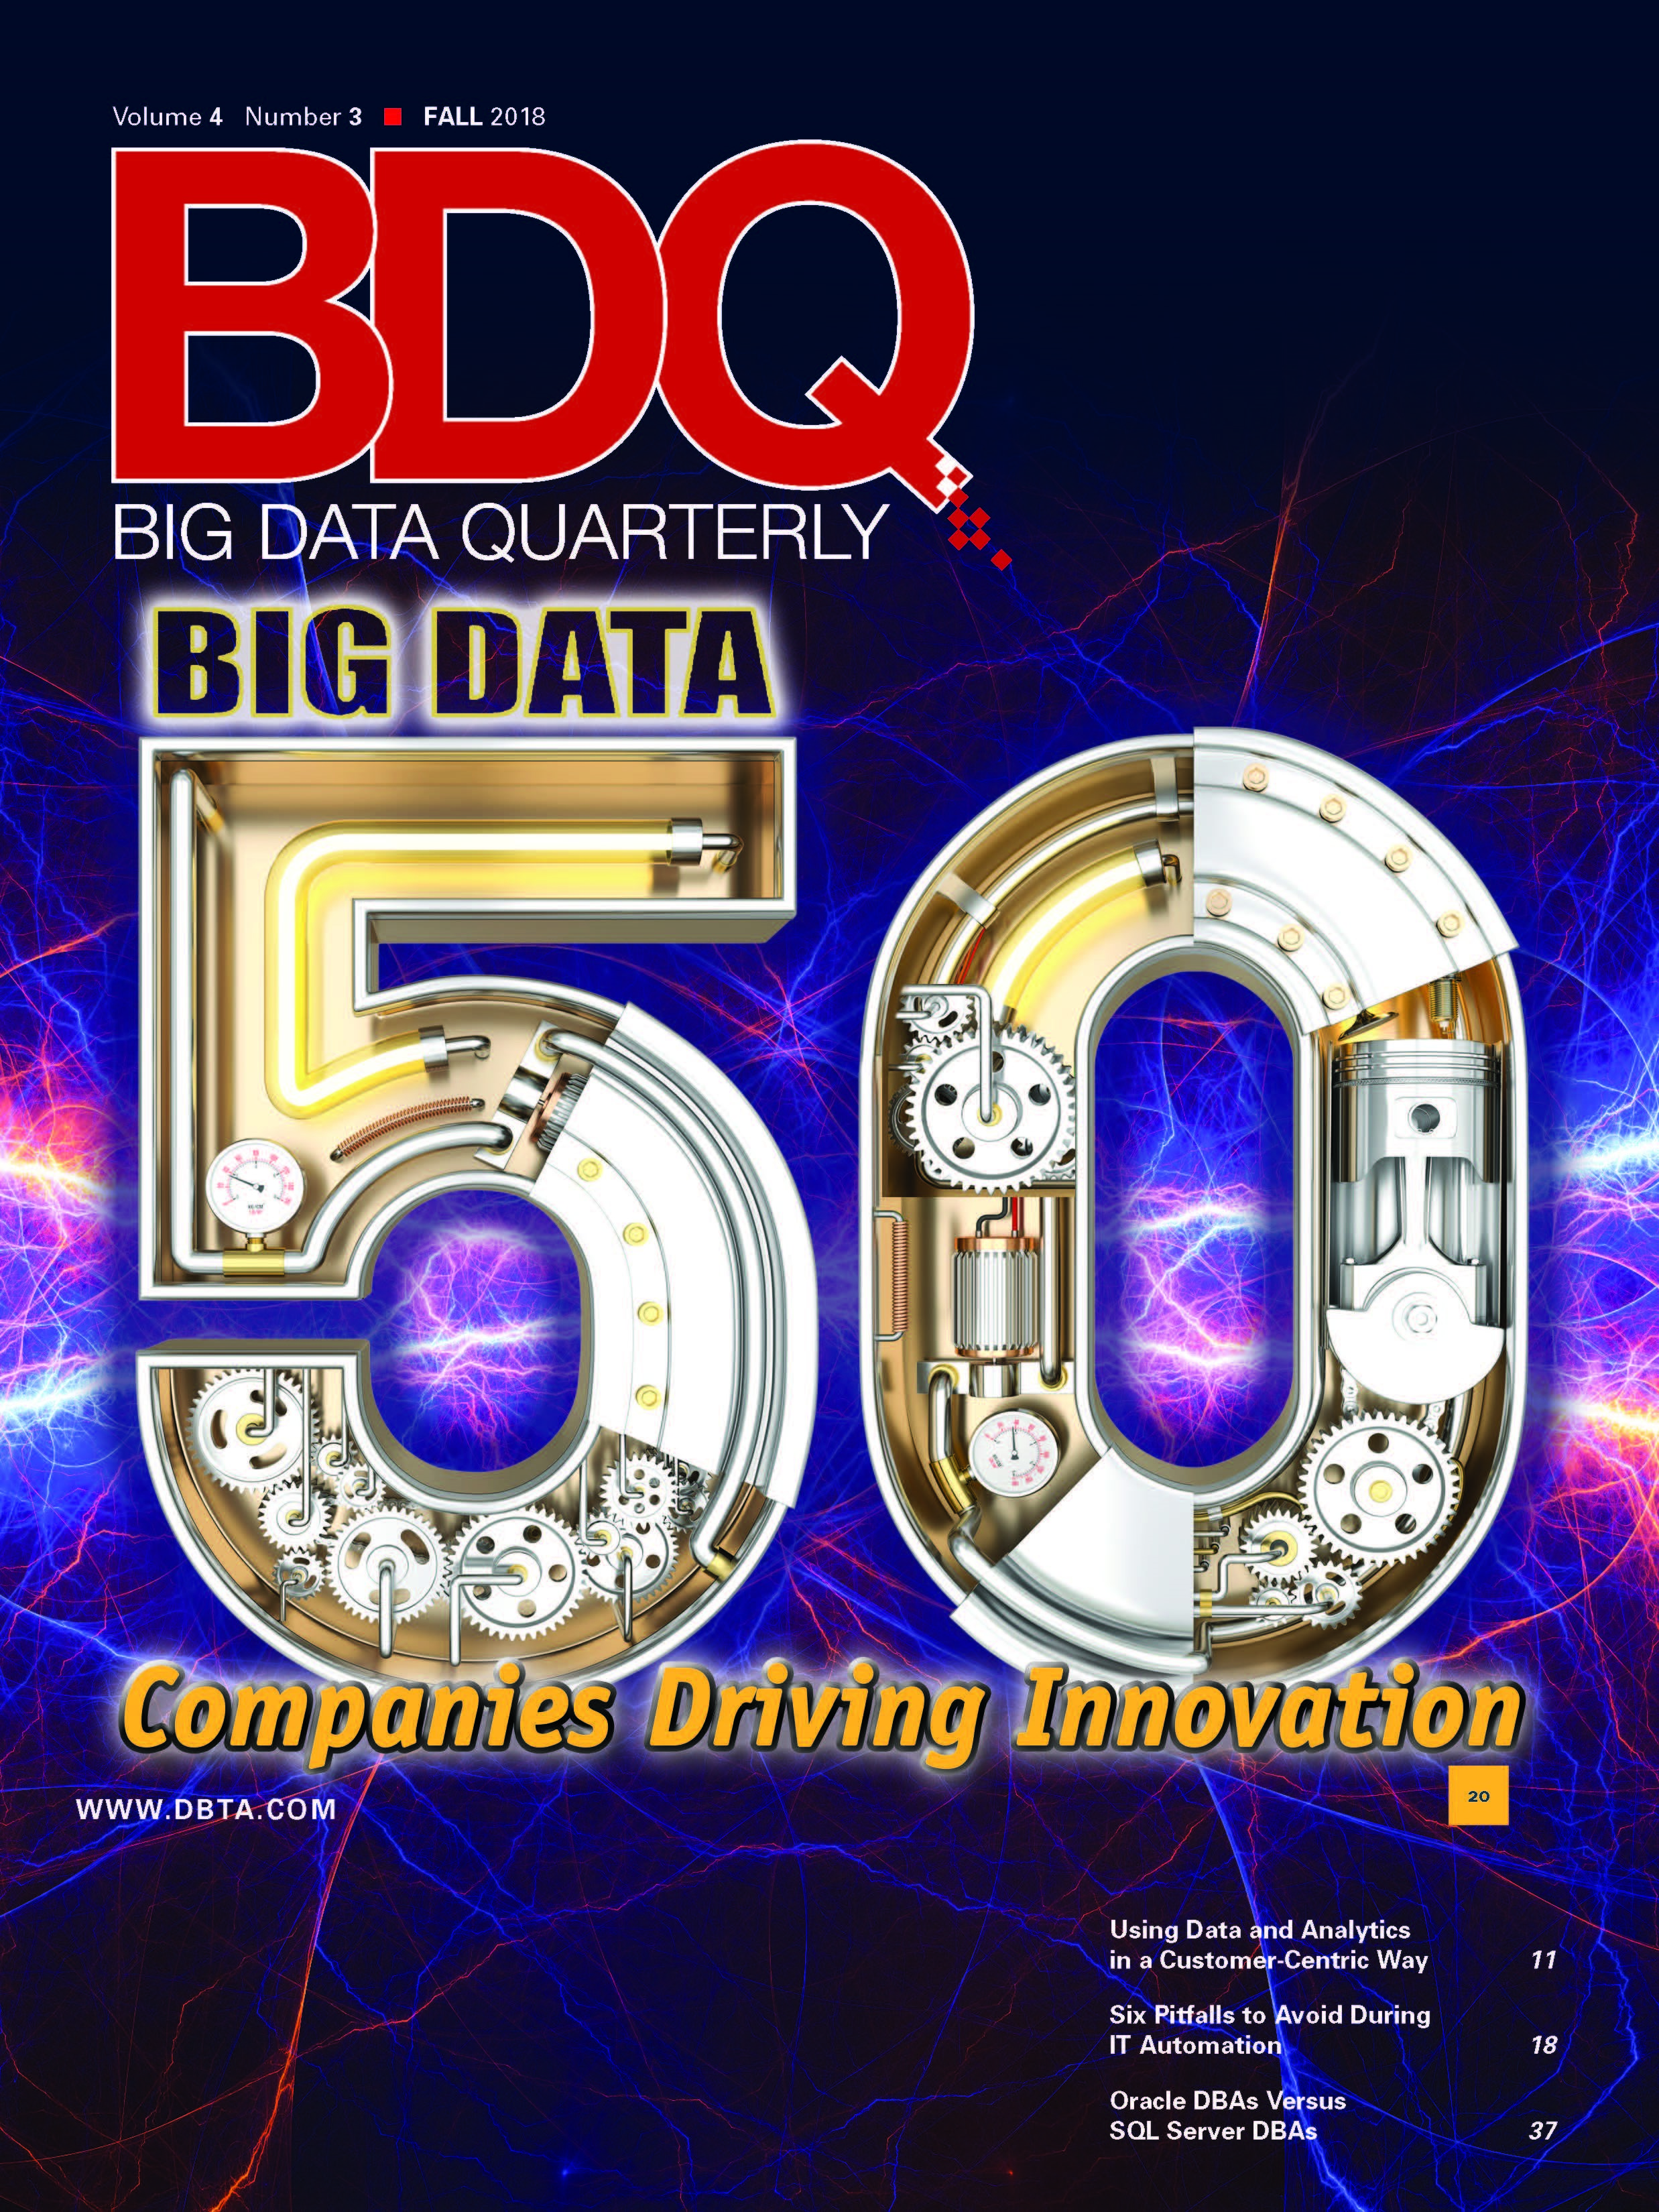 Big Data Quarterly: Fall 2018 Issue